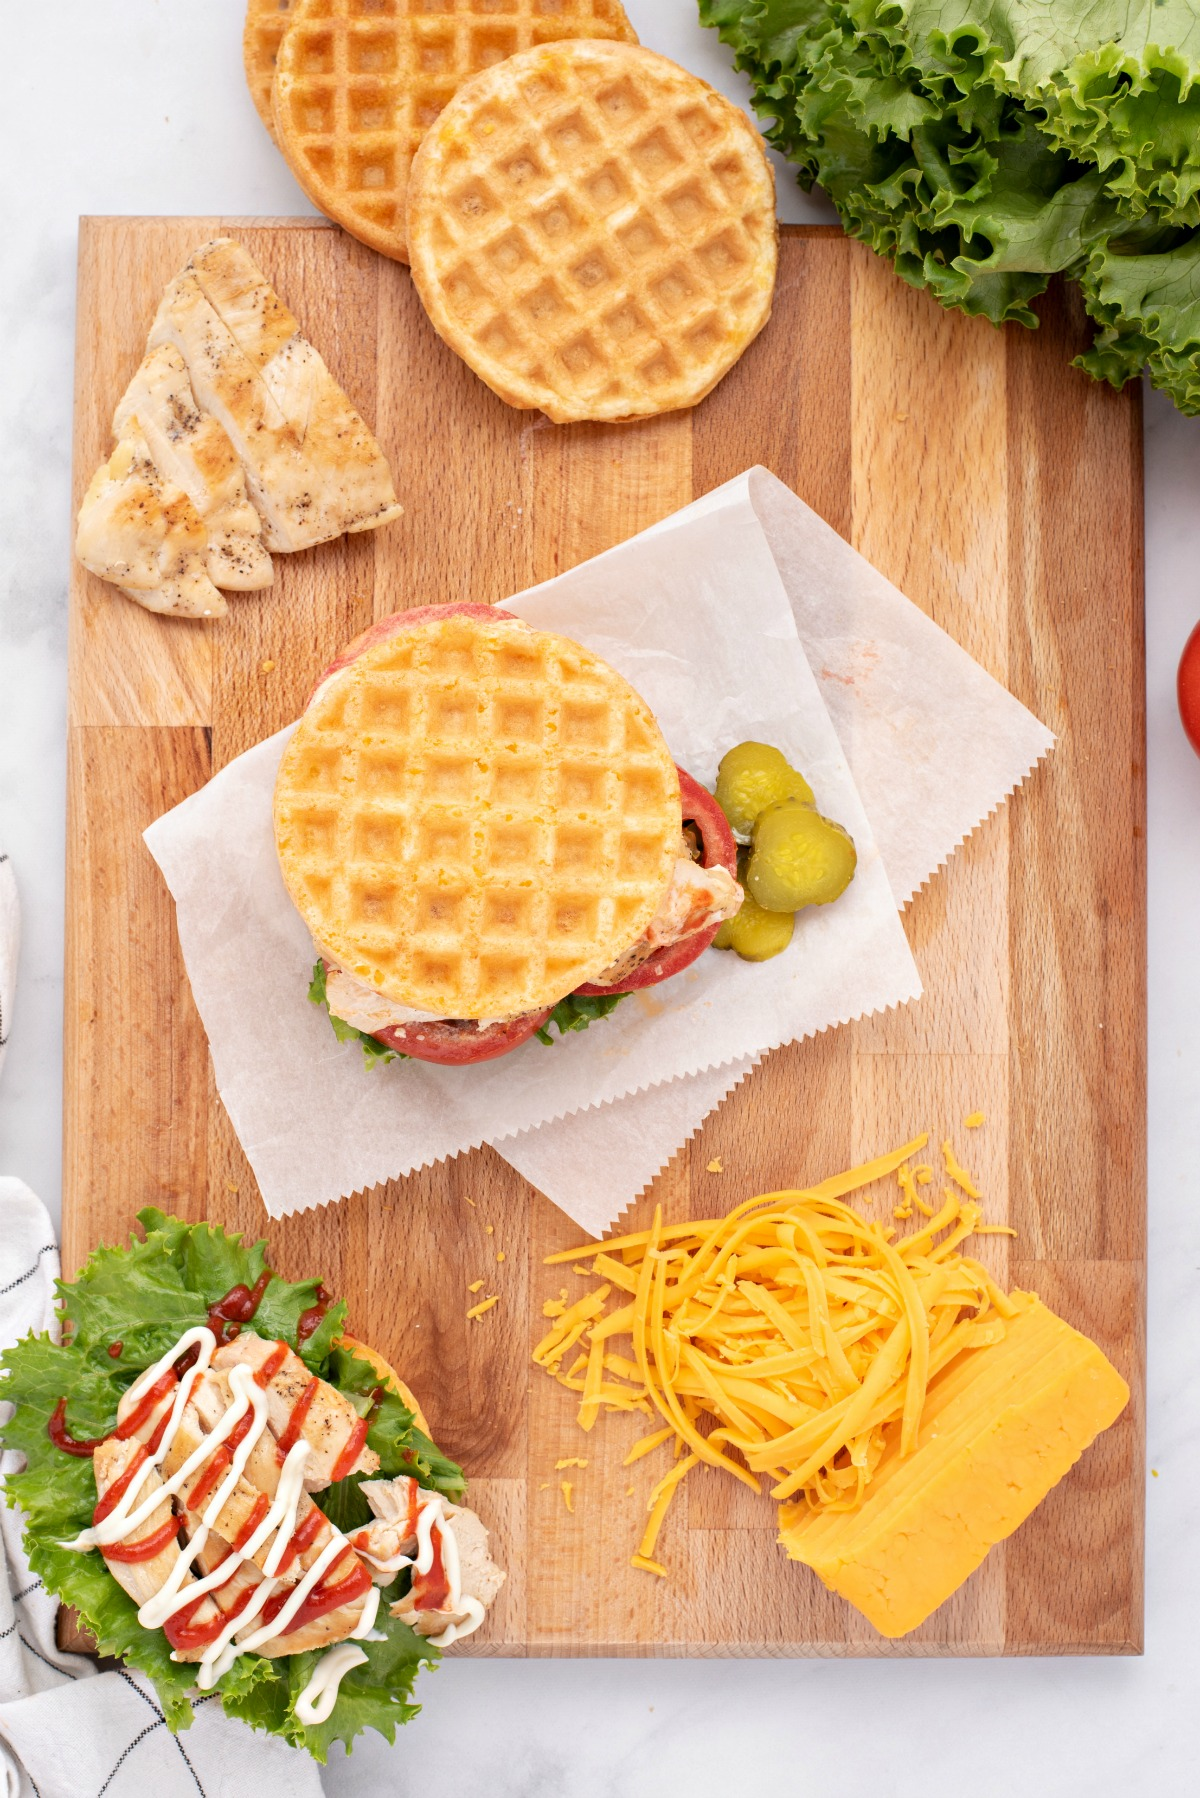 Chaffles being used as a bun for a chicken sandwich.